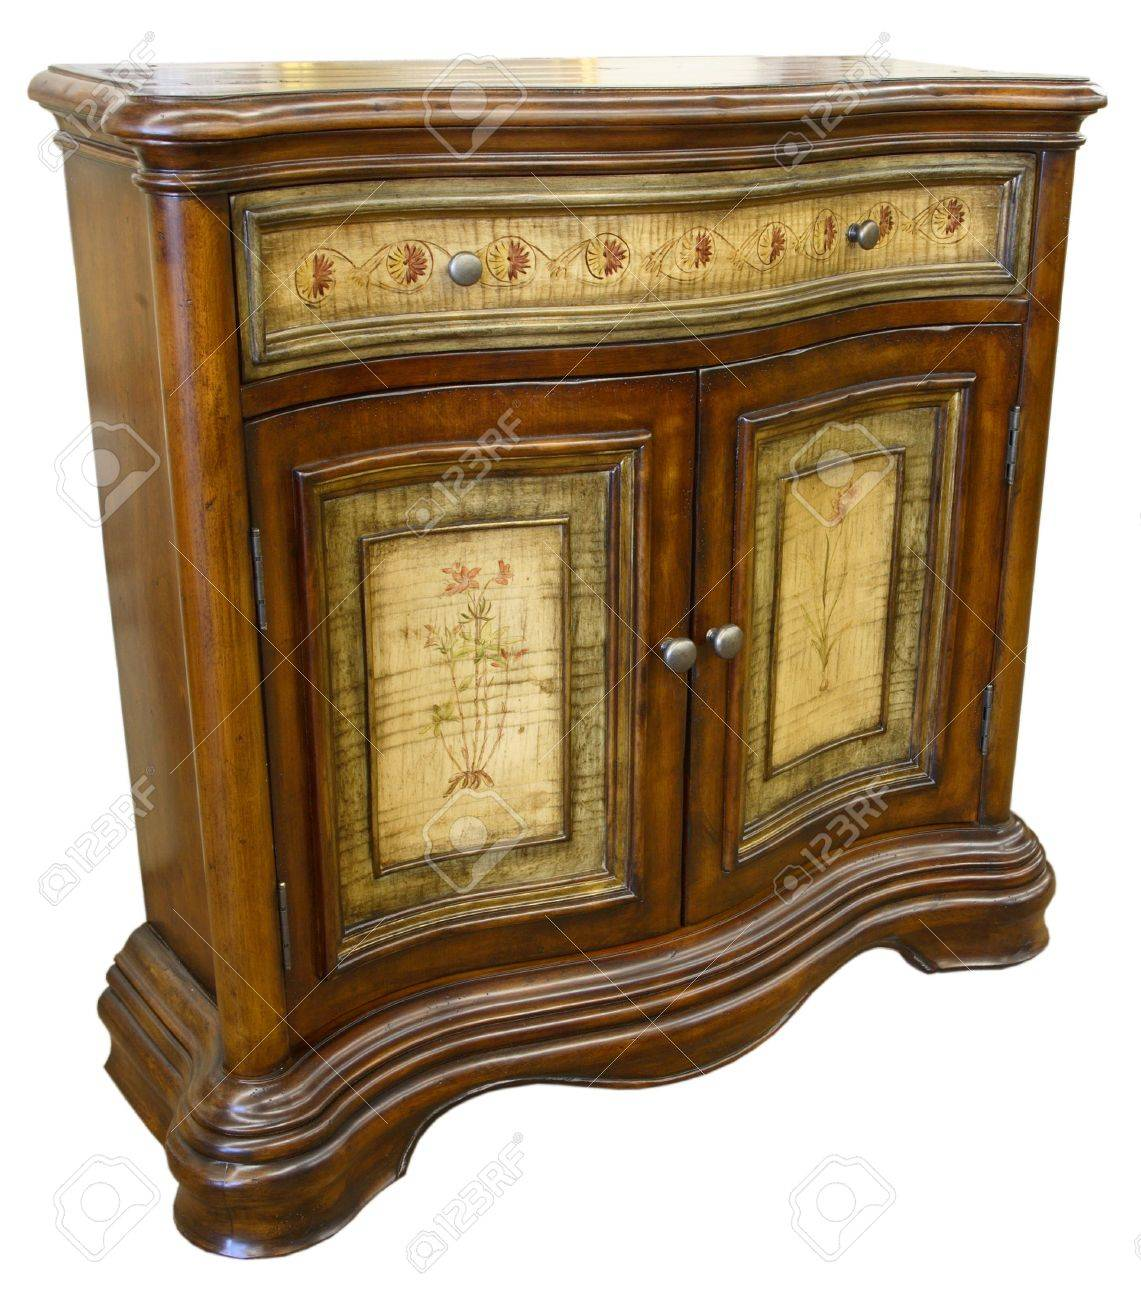 Antique hand painted sofa table console cabinet stock photo antique hand painted sofa table console cabinet stock photo 2699021 geotapseo Image collections